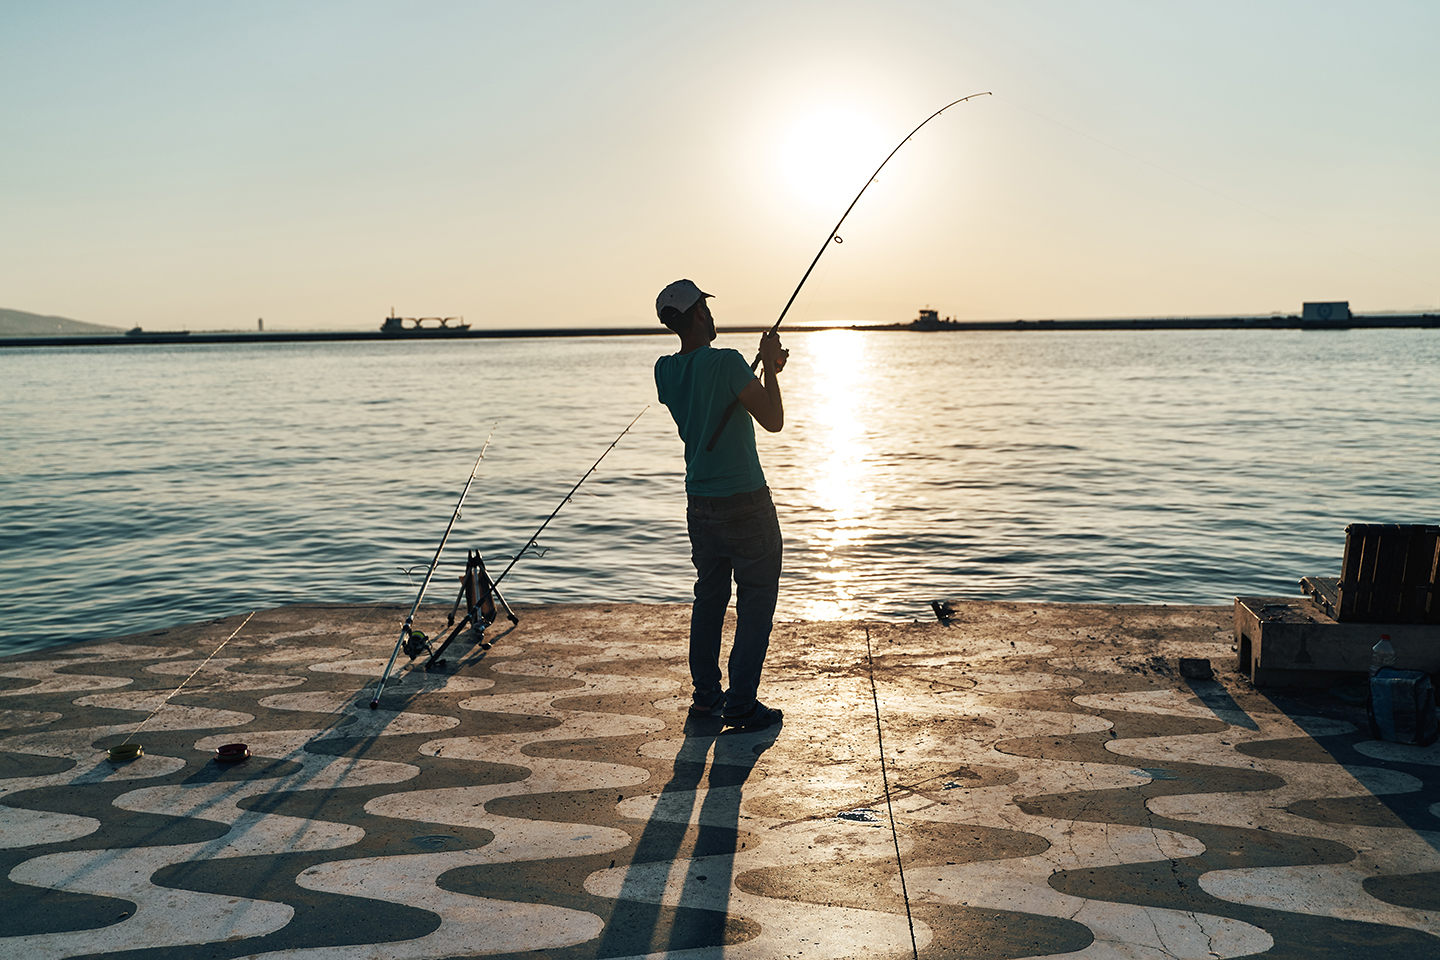 An angler facing the sun and reeling in a fish on a tiled fishing pier.